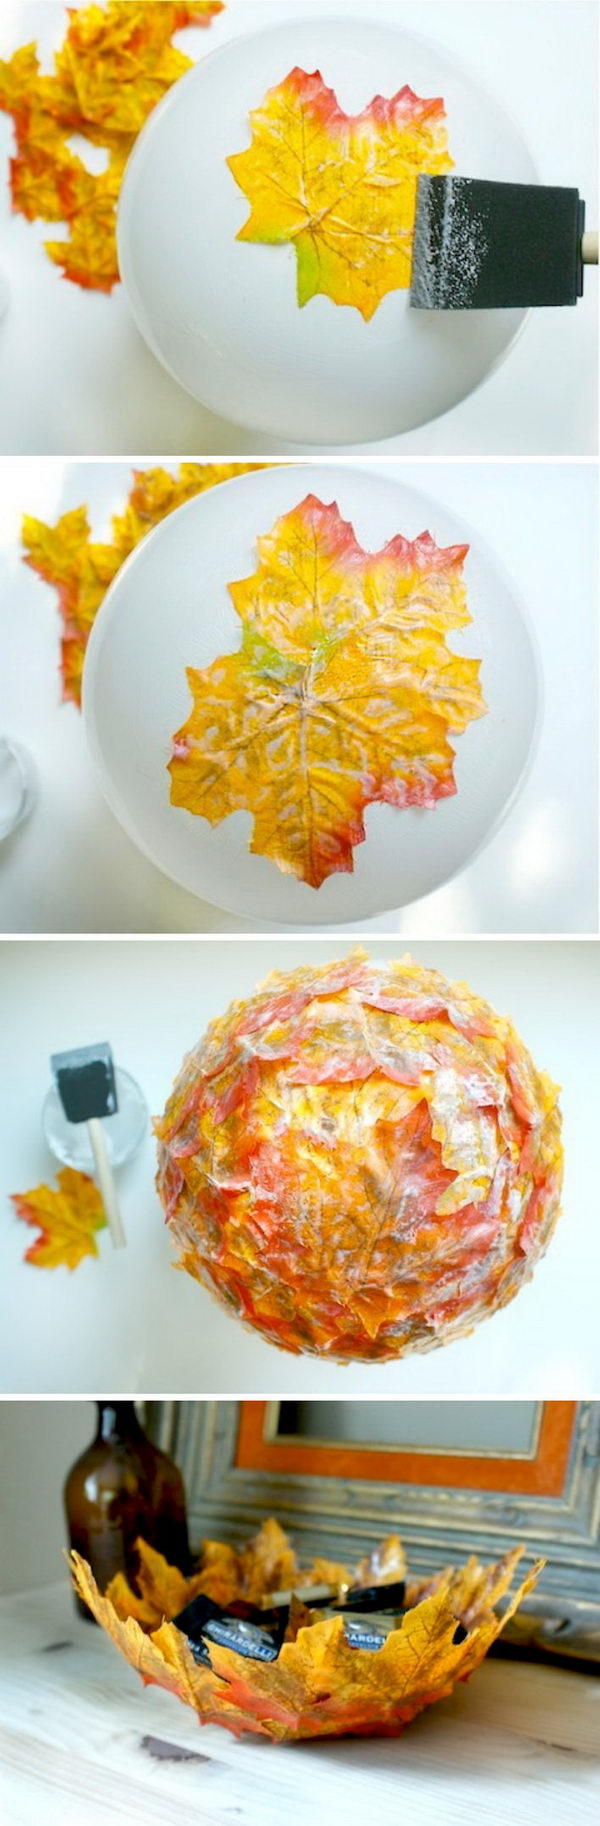 DIY Fall Leaf Bowls.